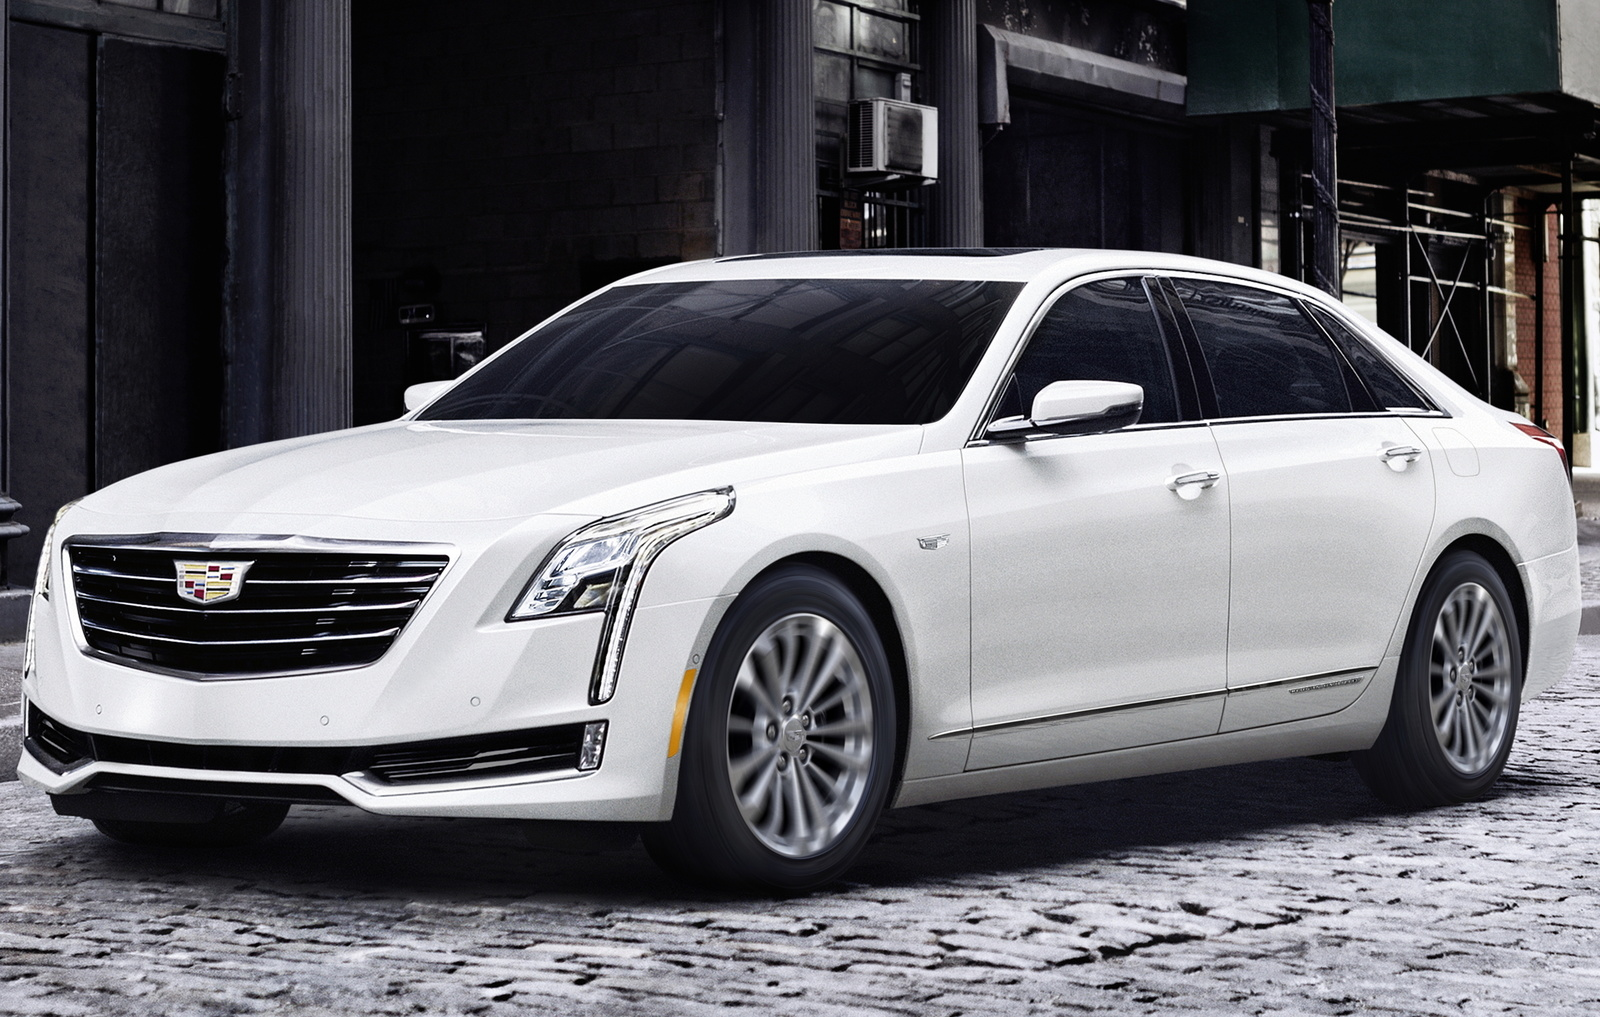 2017 2018 cadillac ct6 plug in hybrid for sale in tampa fl cargurus. Black Bedroom Furniture Sets. Home Design Ideas